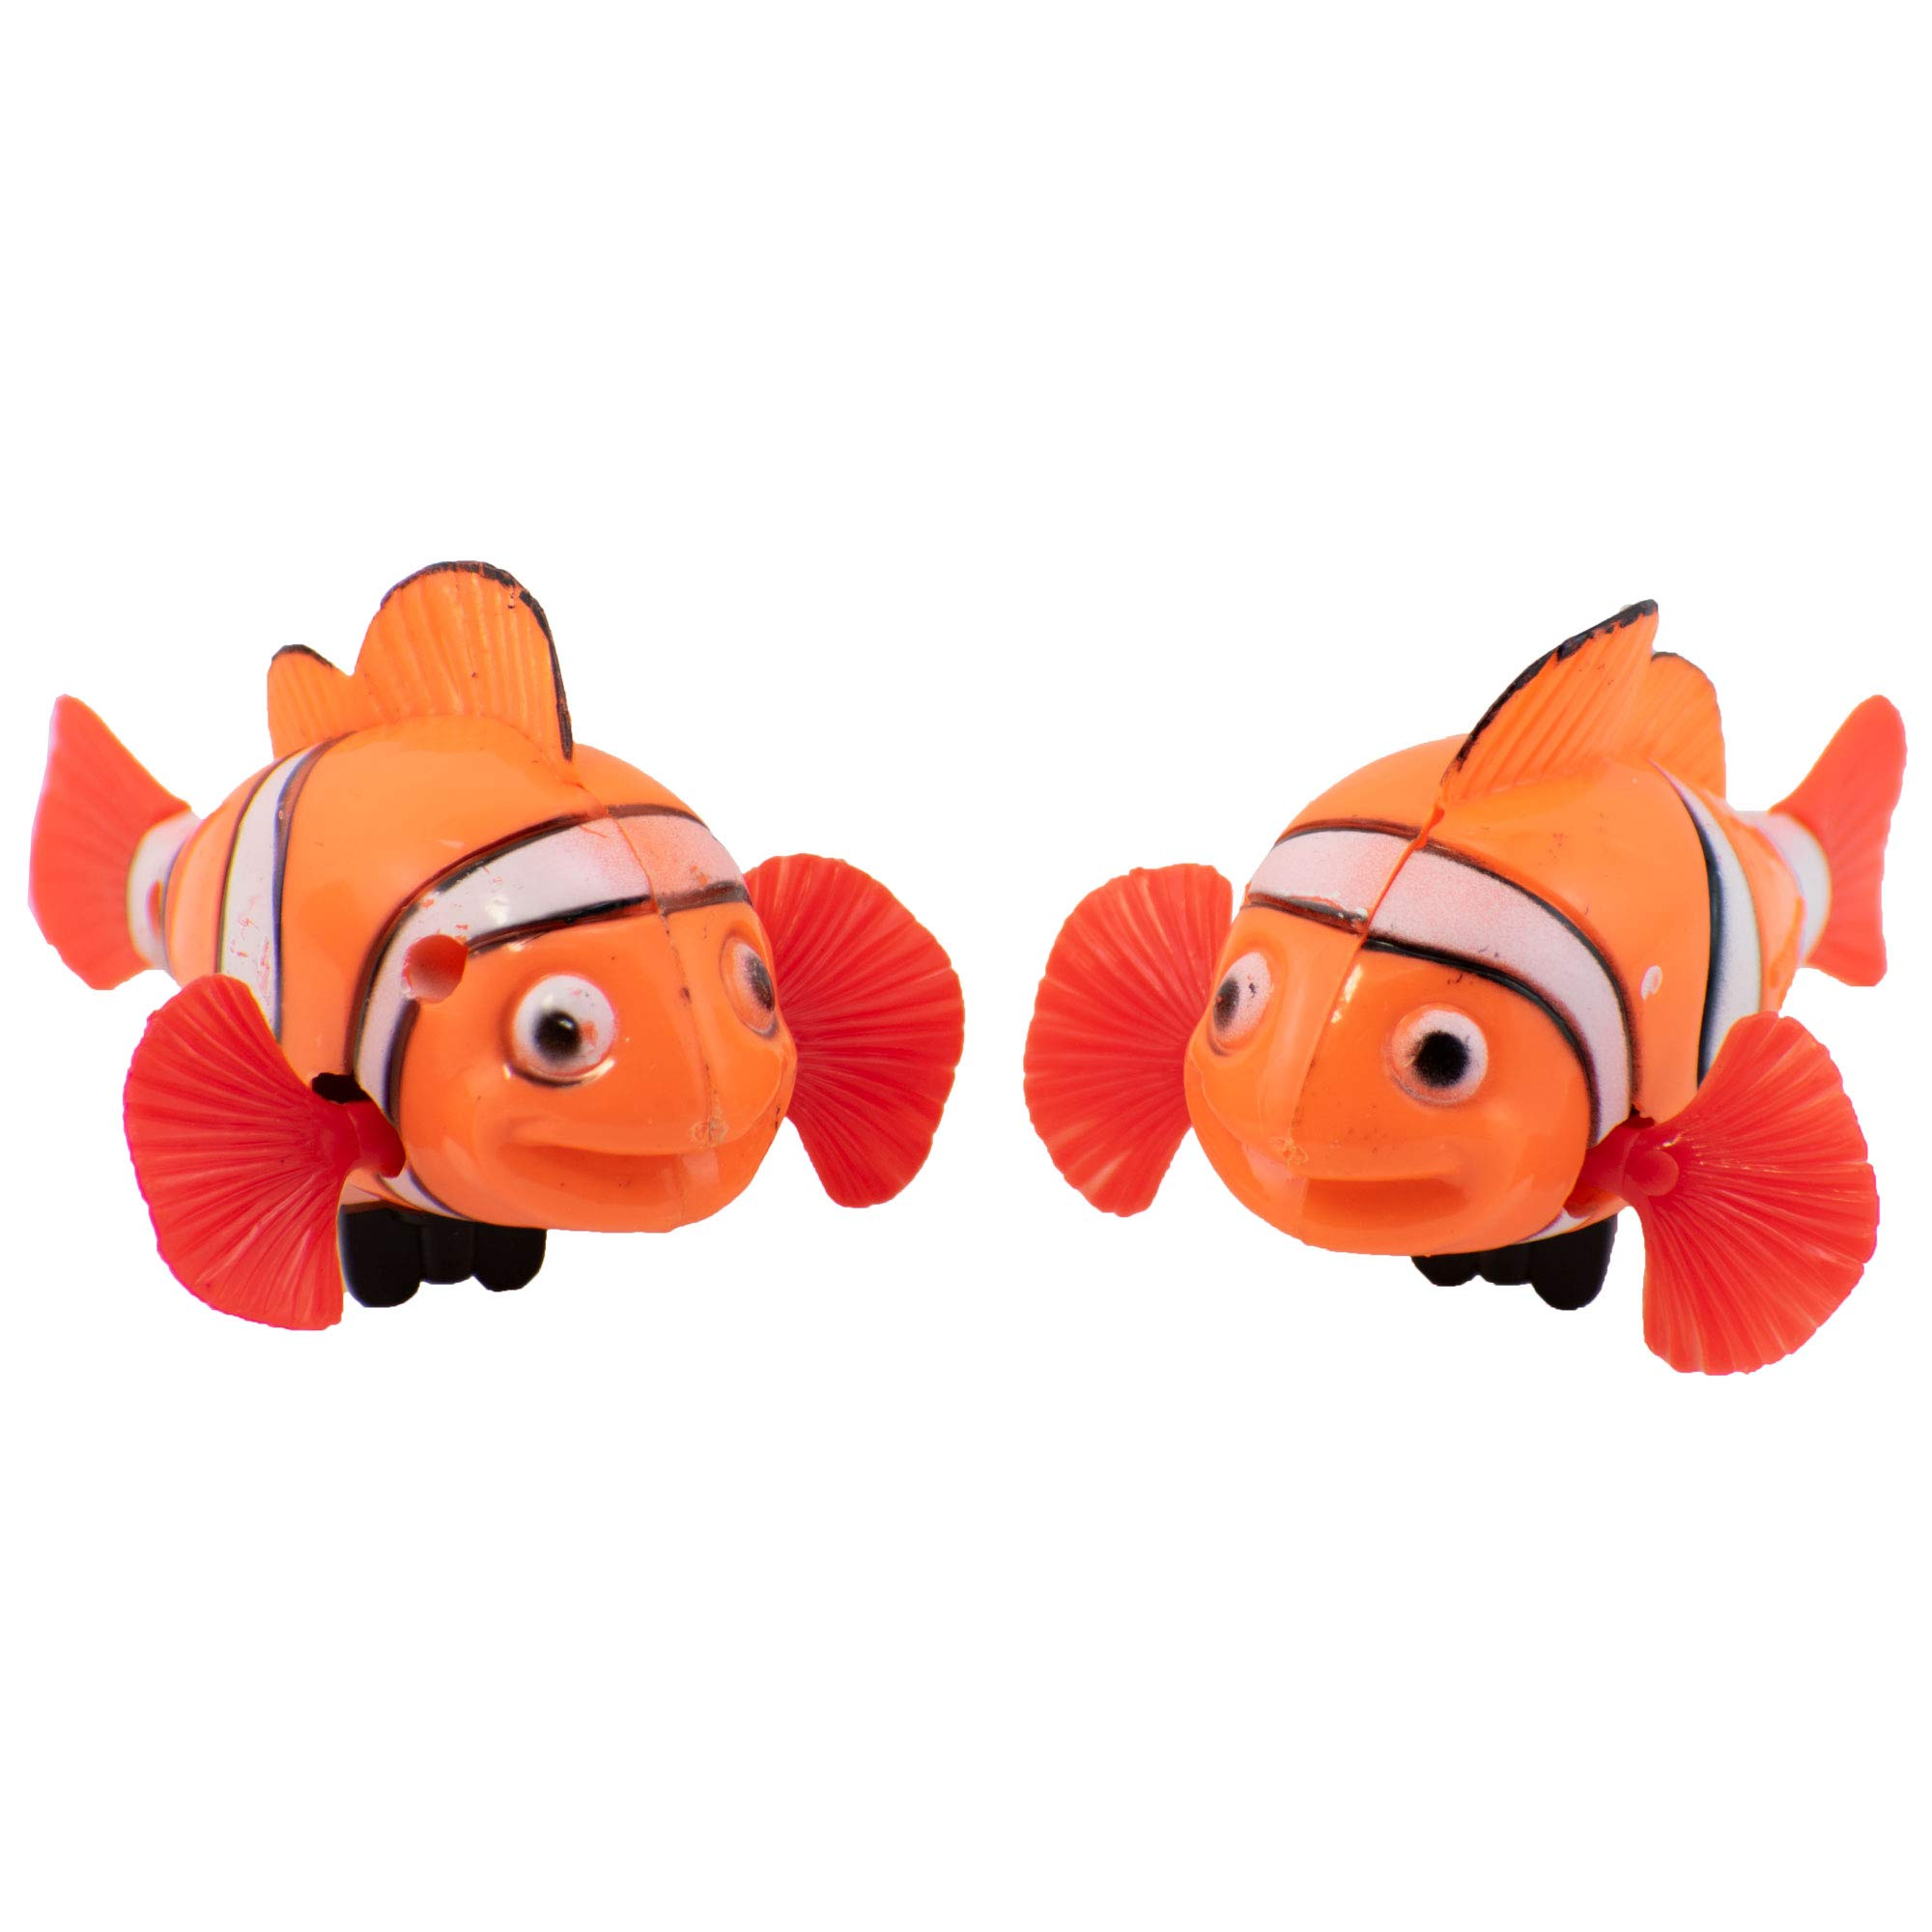 Giggle Time Wind-Up Swimming Clownfish - (24) Pieces - Bright Colors - for Kids, Boys and Girls, Party Favors, Pinata Stuffers, Children's Gift Bags, Carnival Prizes